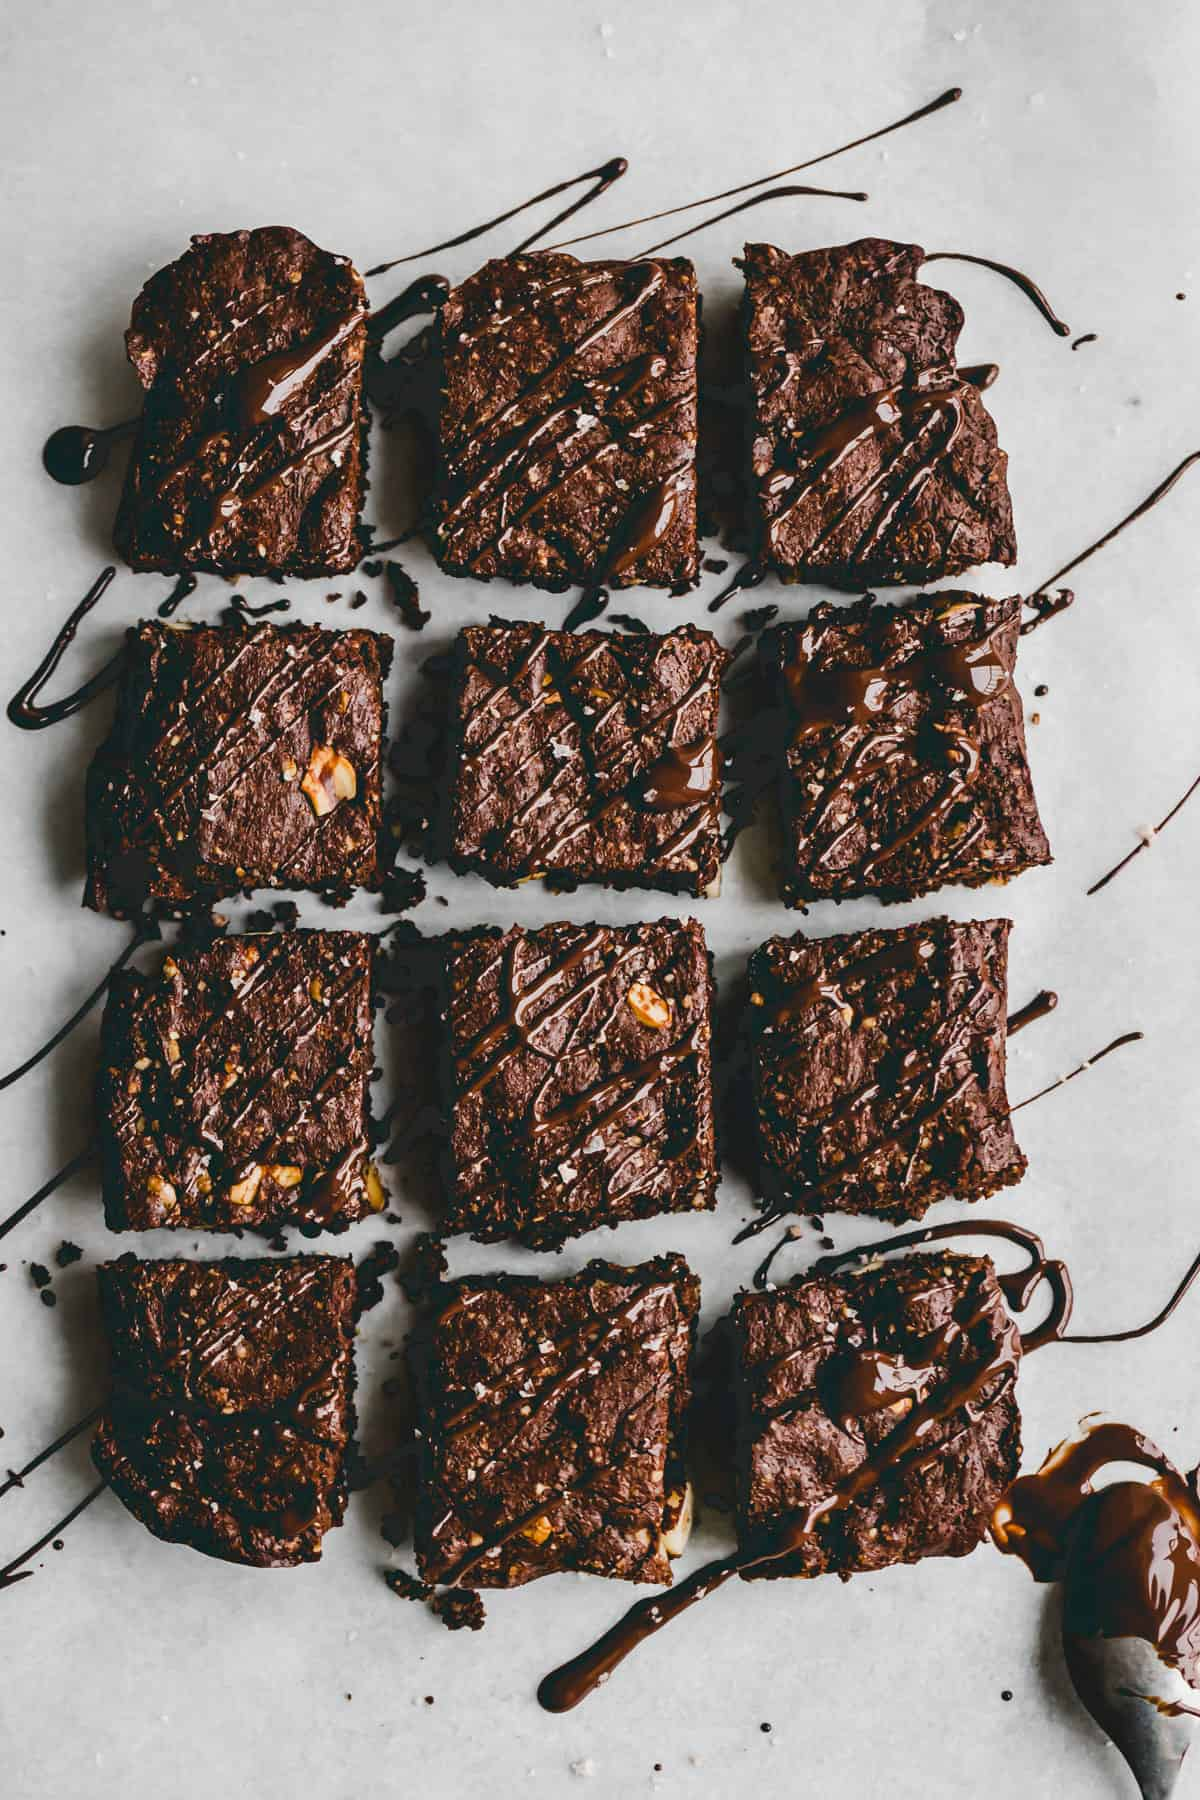 sliced gluten-free brownies drizzled with chocolate